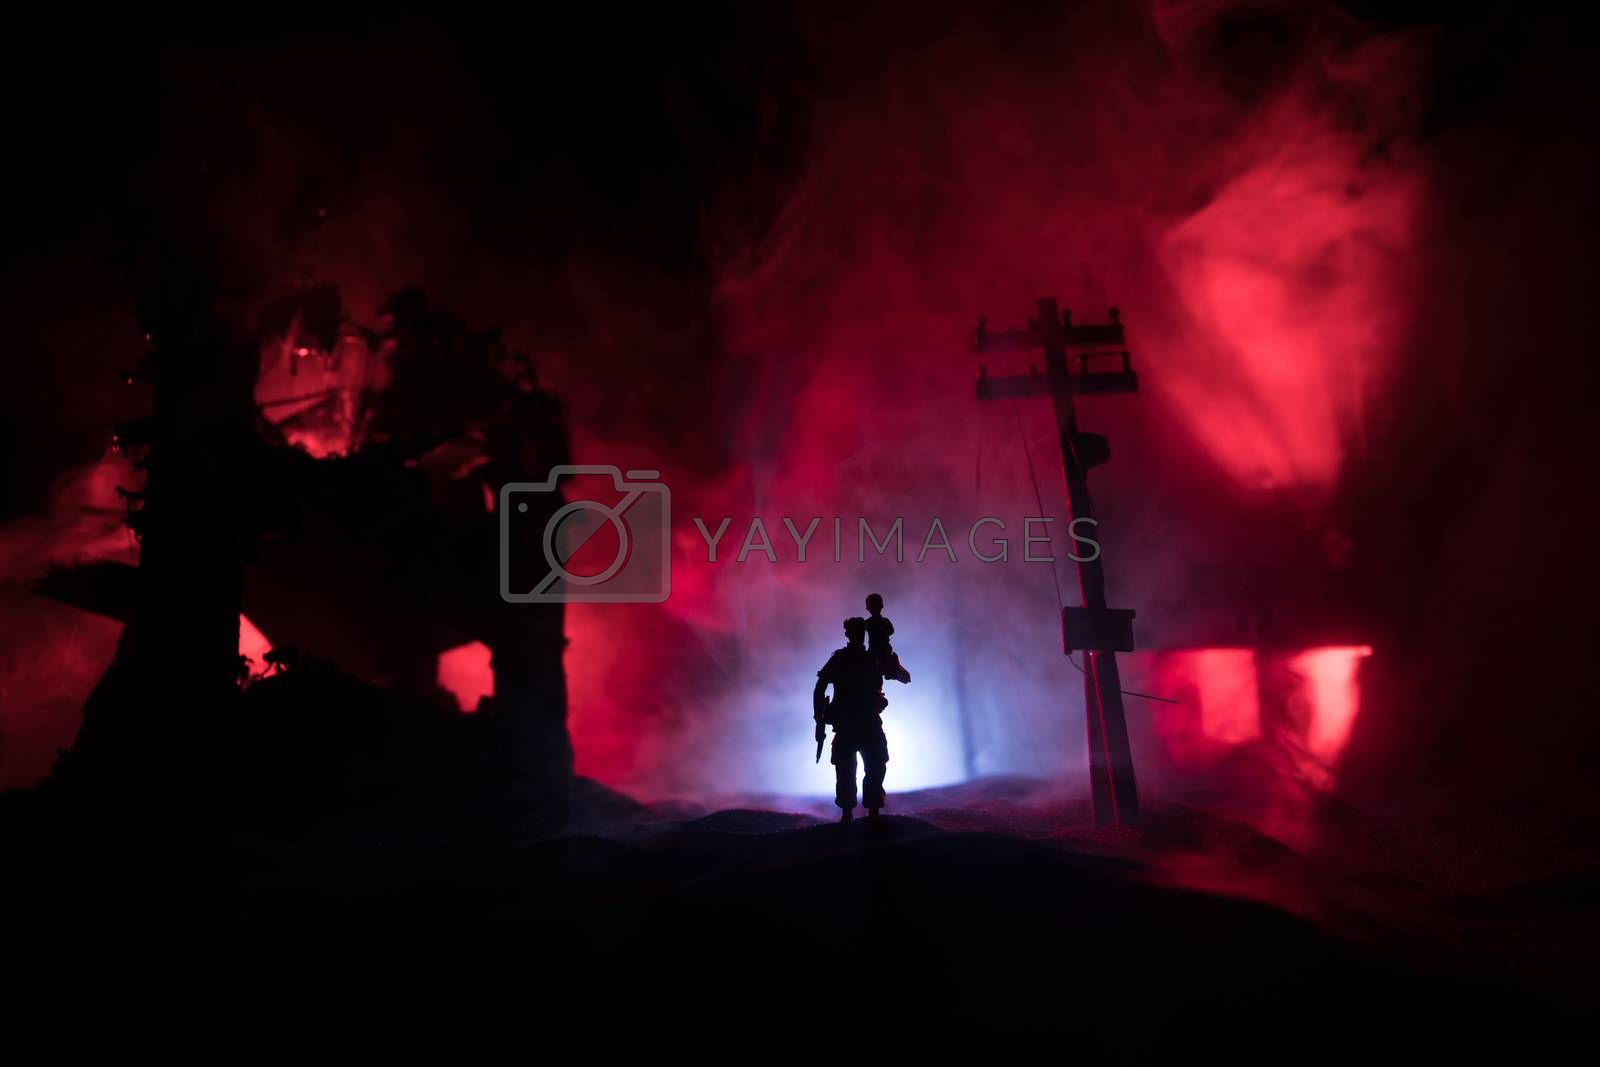 Rescuer carrying little boy in destroyed city. Terrible face of war concept. Creative artwork table decoration with light and fog. Selective focus.